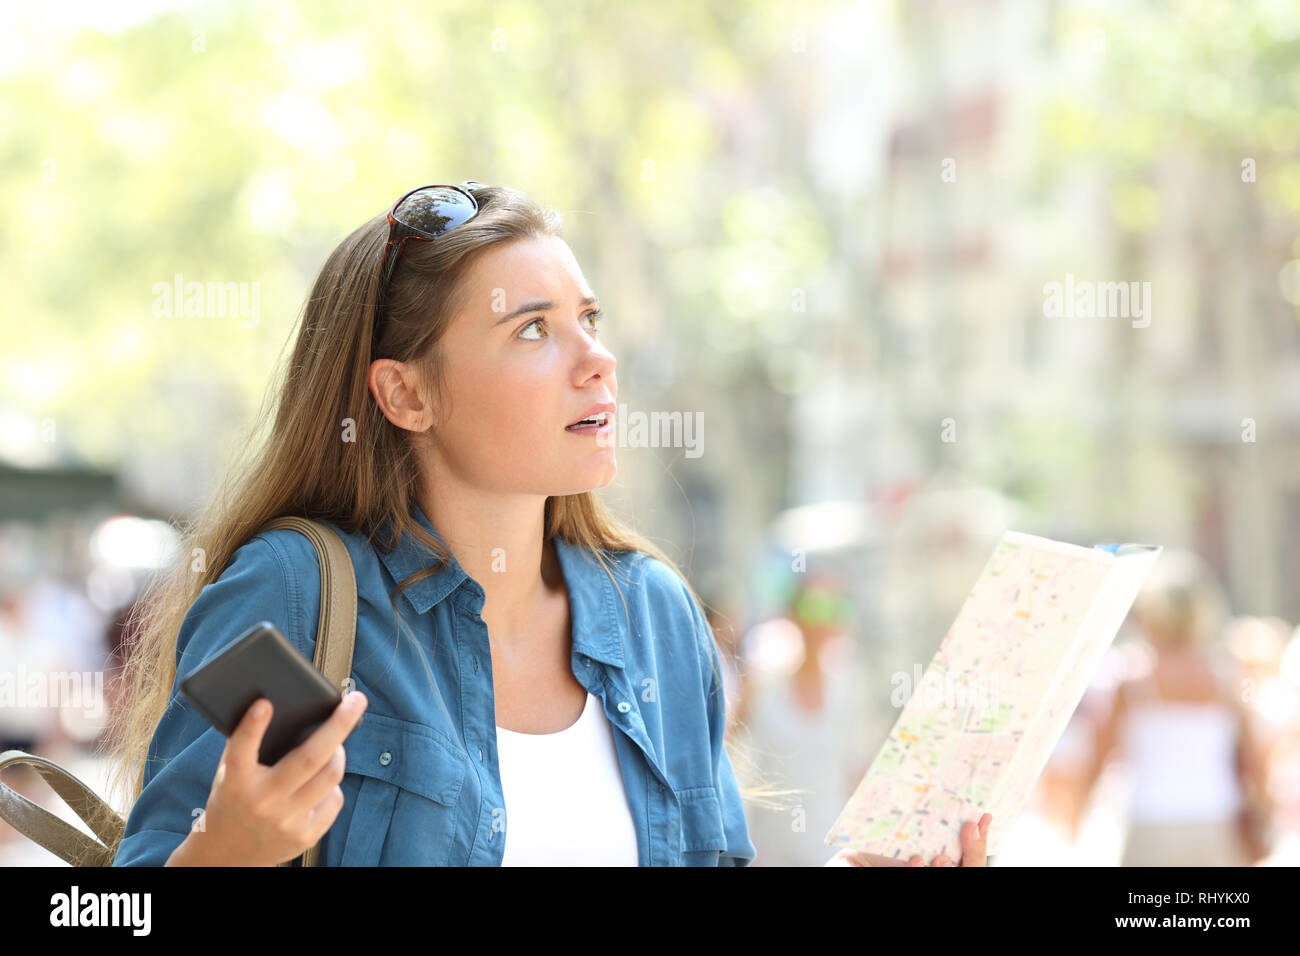 Lost tourist trying to find location holding phone and paper map in the street - Stock Image